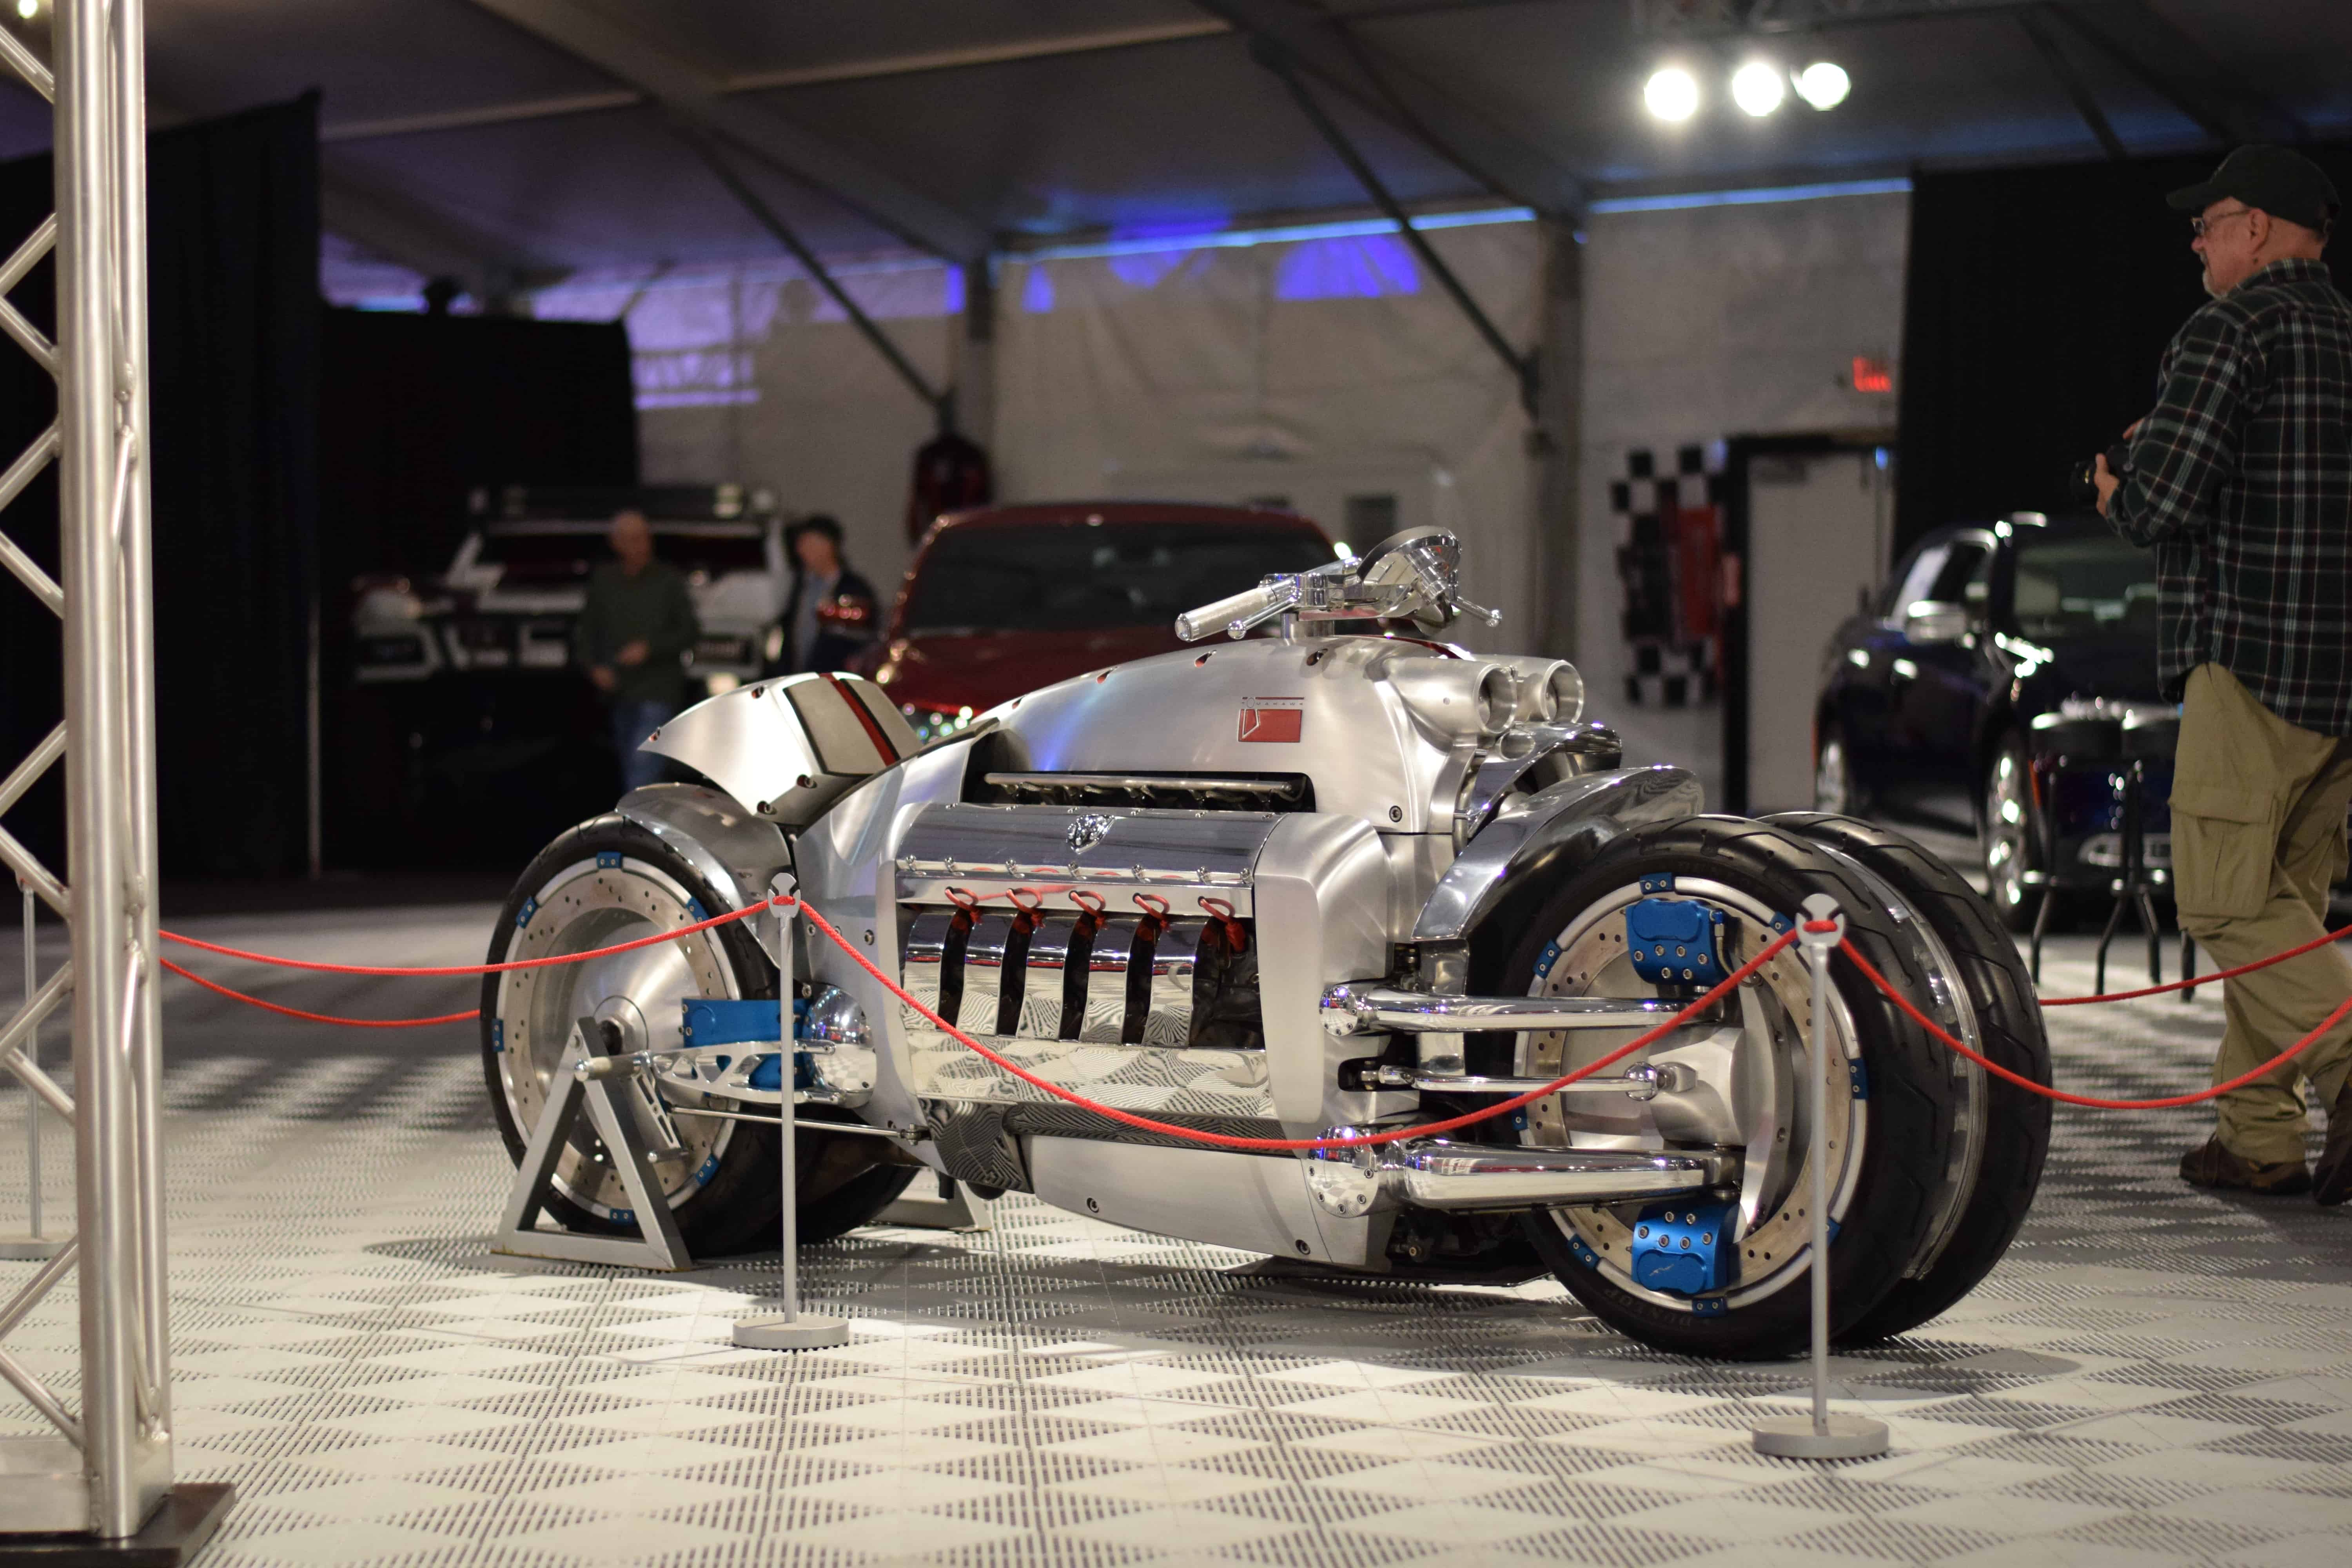 dodge tomahawk bike features with The Srt Tomahawk The Hypercar Of The Future on Motoped Survival Edition also Expensive Bikes likewise 10 Cool And Unusual Motorcycles as well Mahindra Mojo Review The Mile Muncher moreover Mercier Jones Hovercraft.